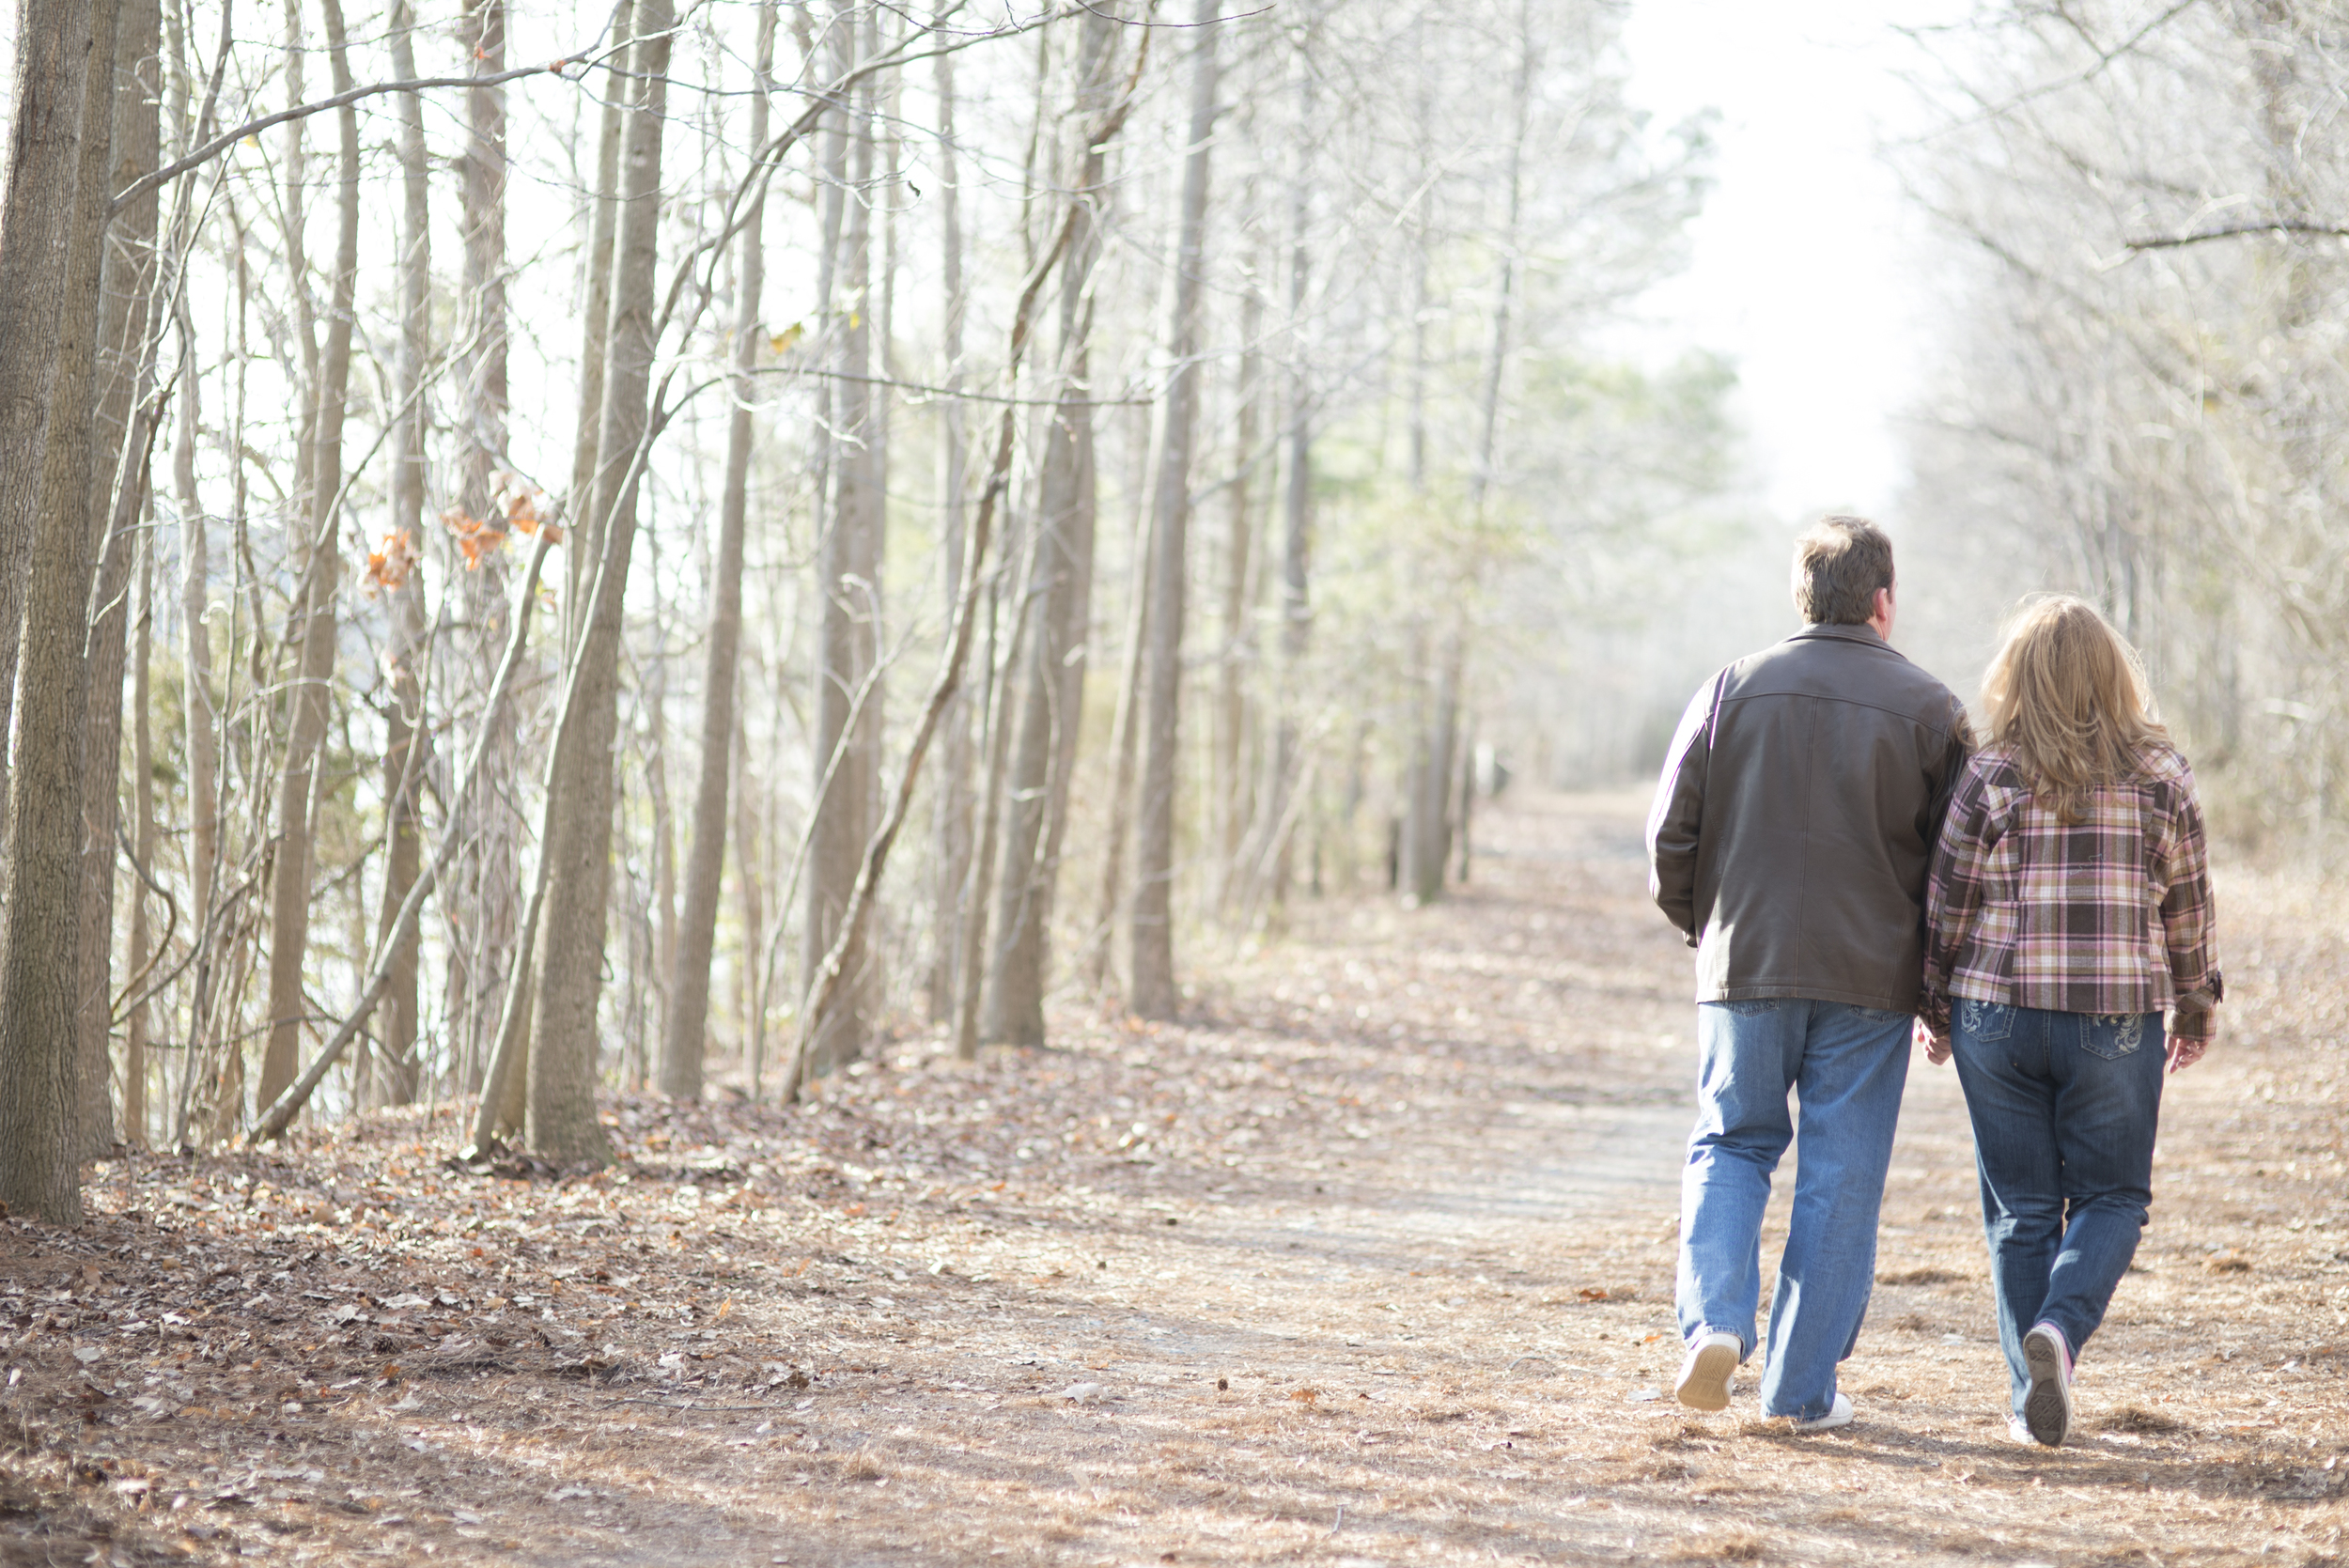 Engagement session on a walking path in the winter